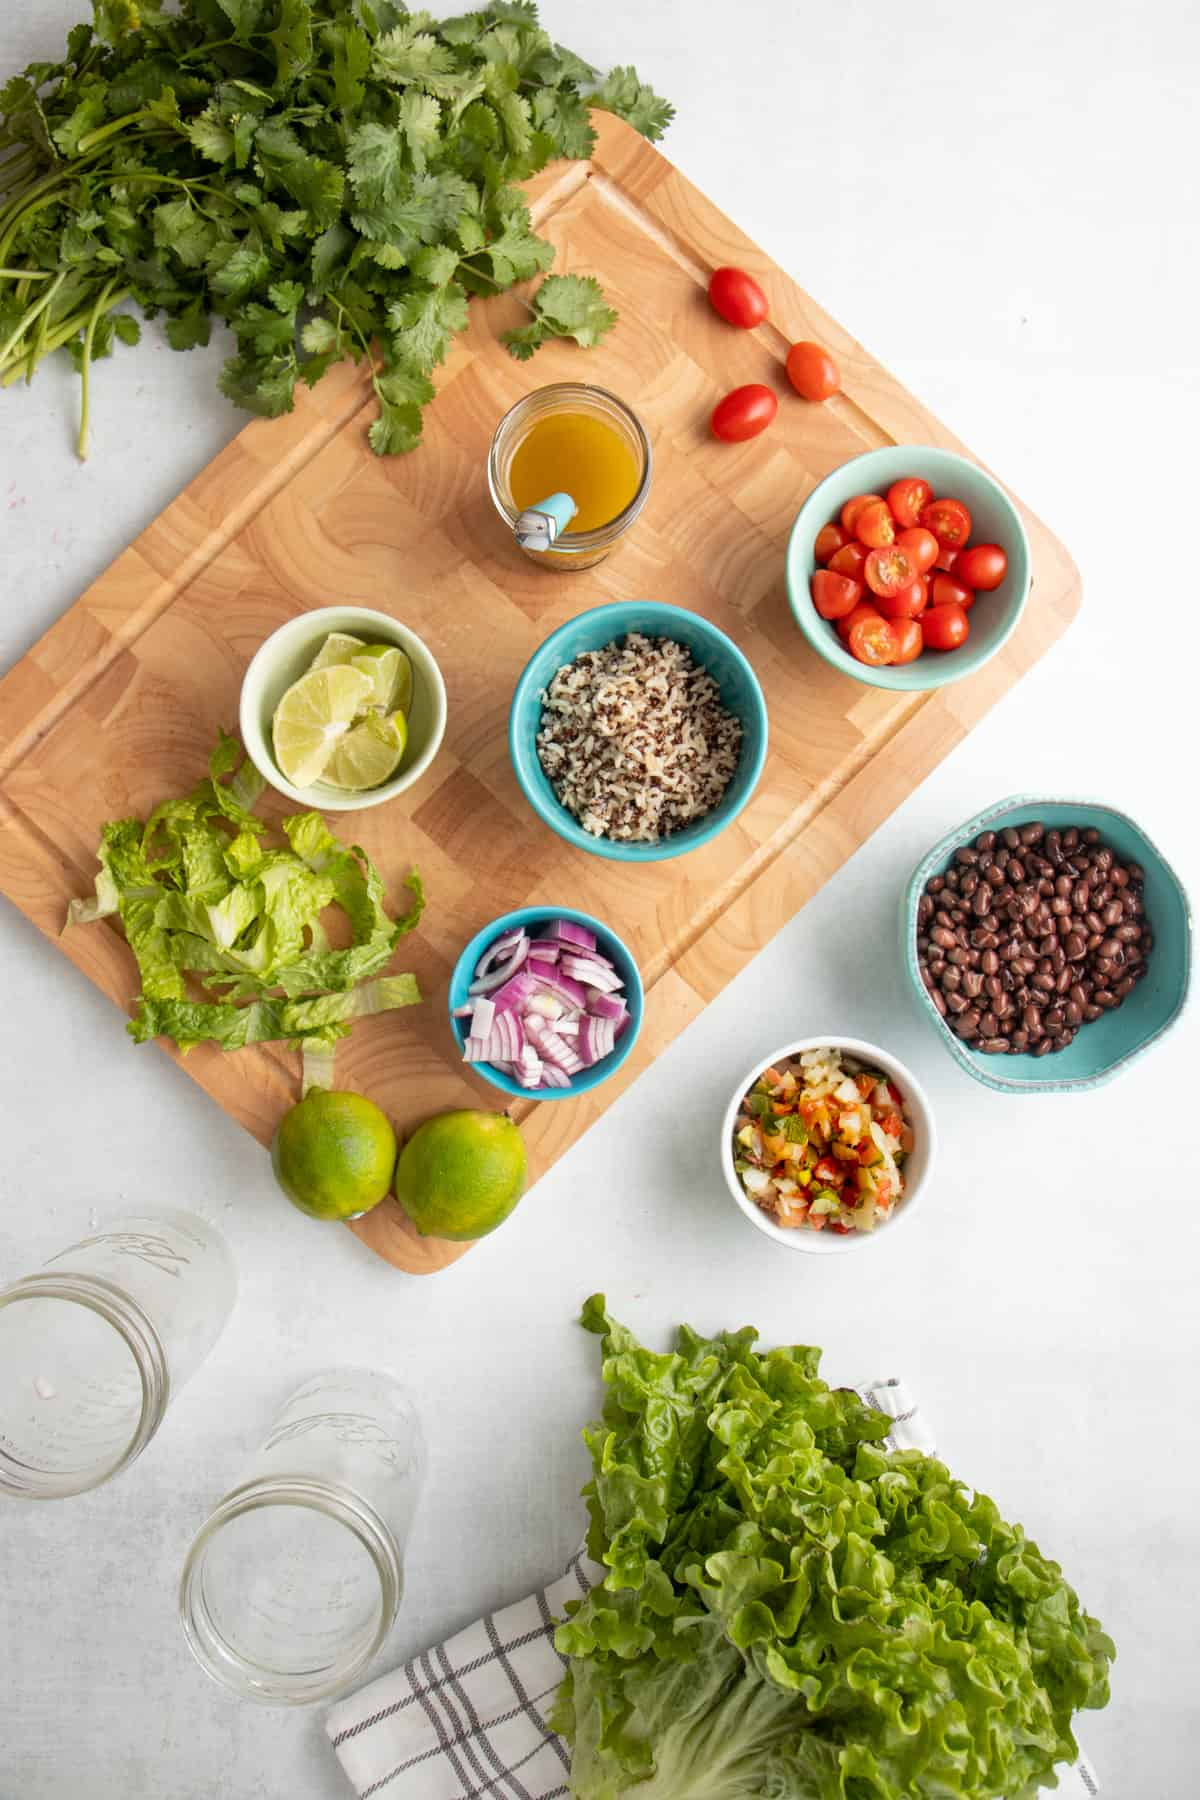 Ingredients for black bean fiesta salad are in blue bowls. Bowls are sitting on a wooden cutting board and a white countertop. Two empty jars and lettuce are on the counter.